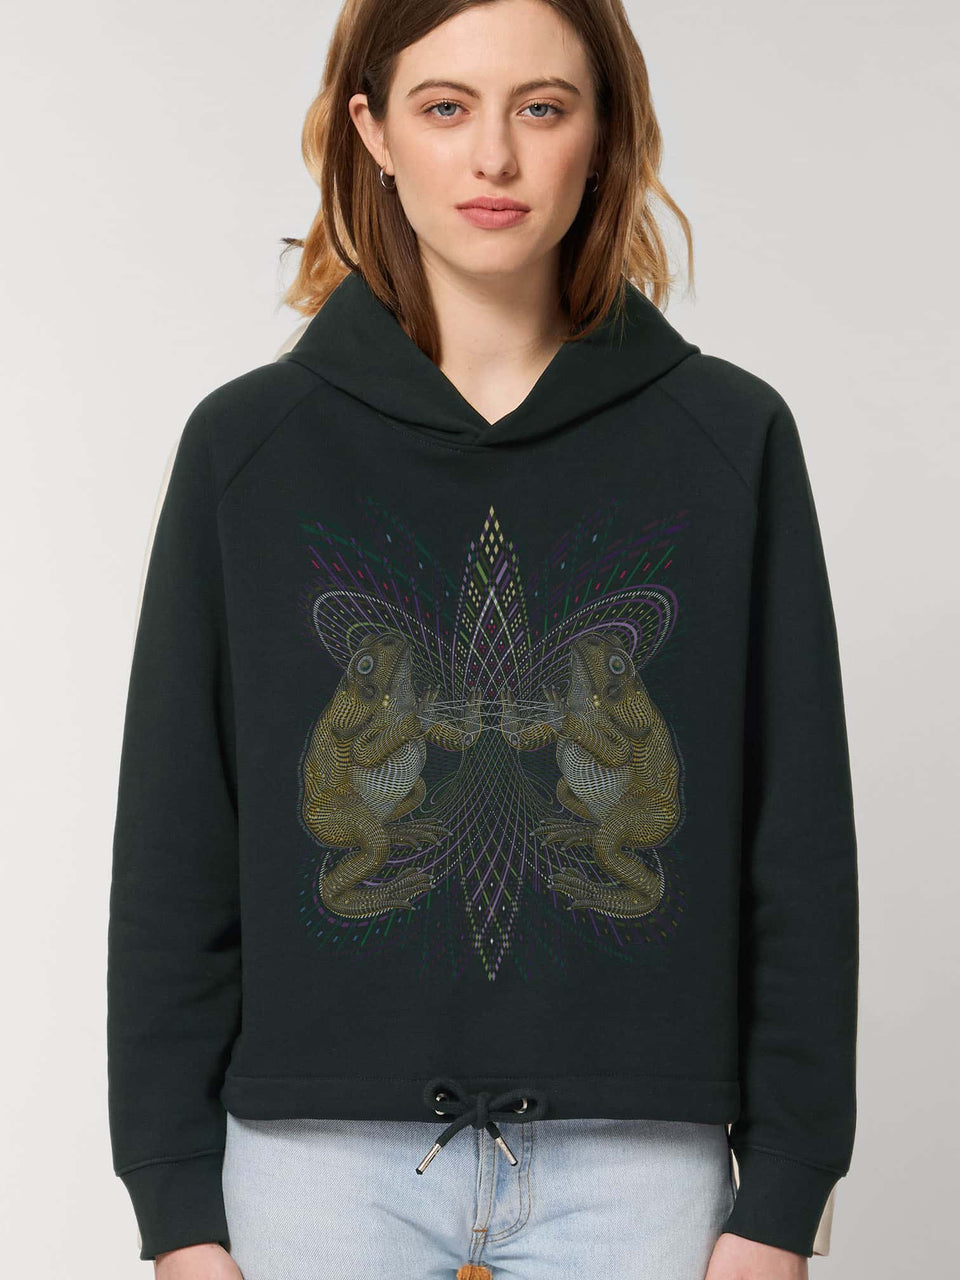 Bufo Alvarius Made To Order Women Cropped Hoodie Sweatshirt - Black